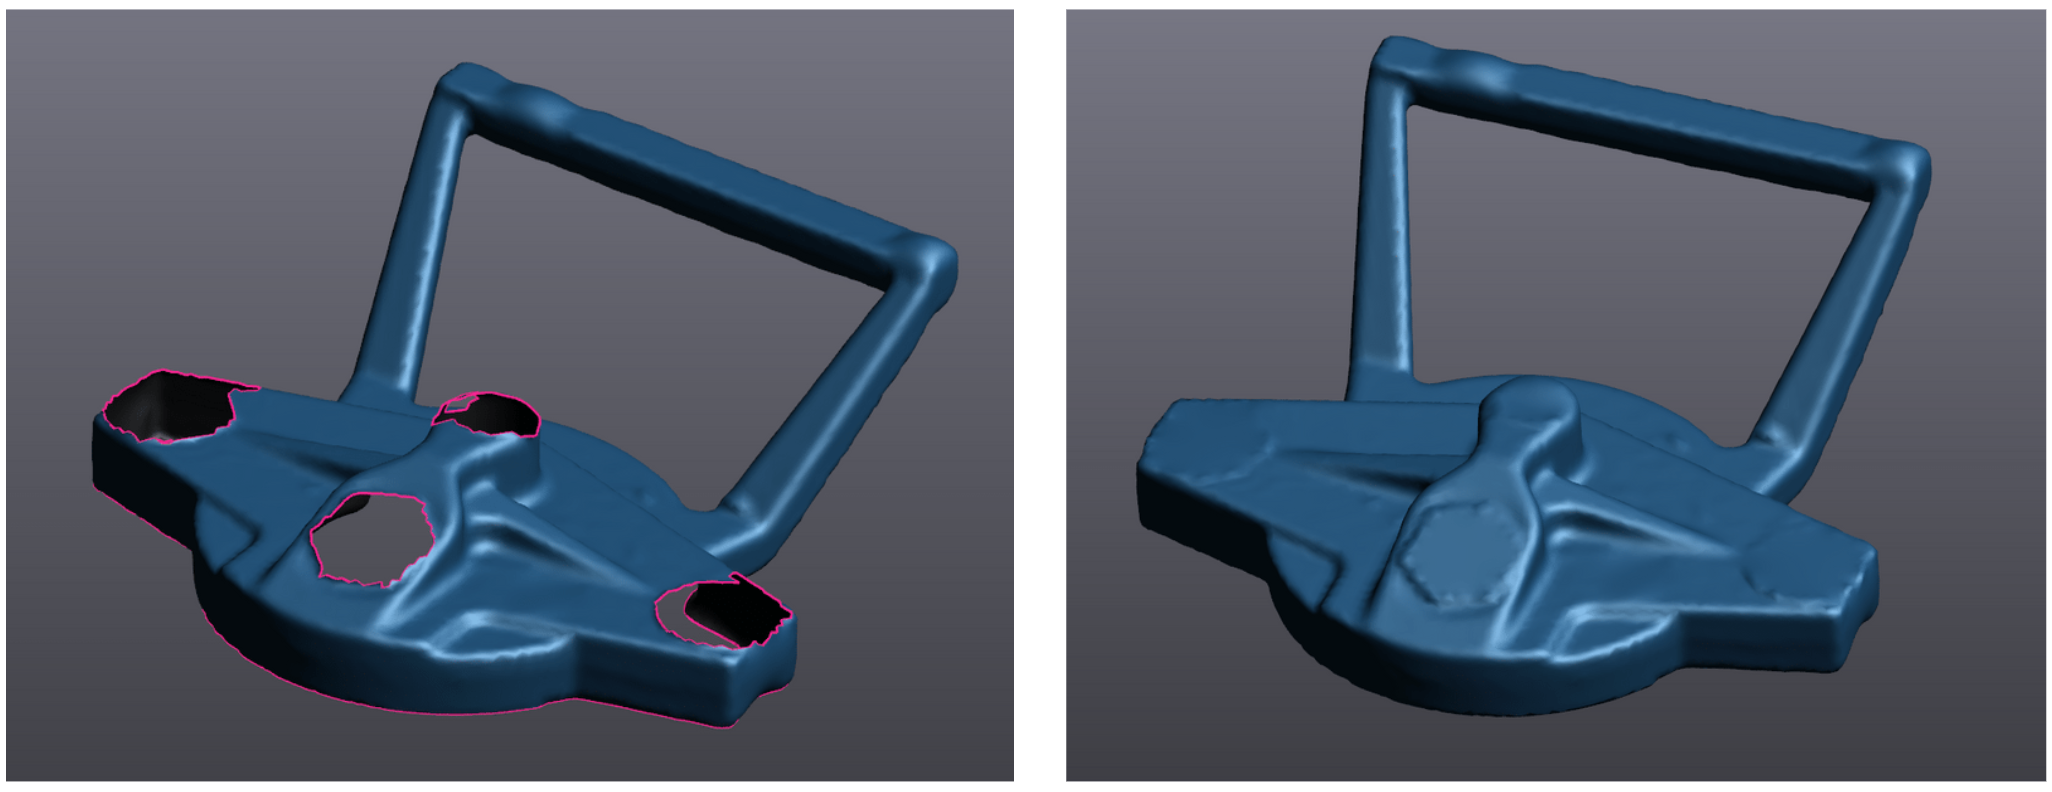 The 3D model before and after filling in the holes